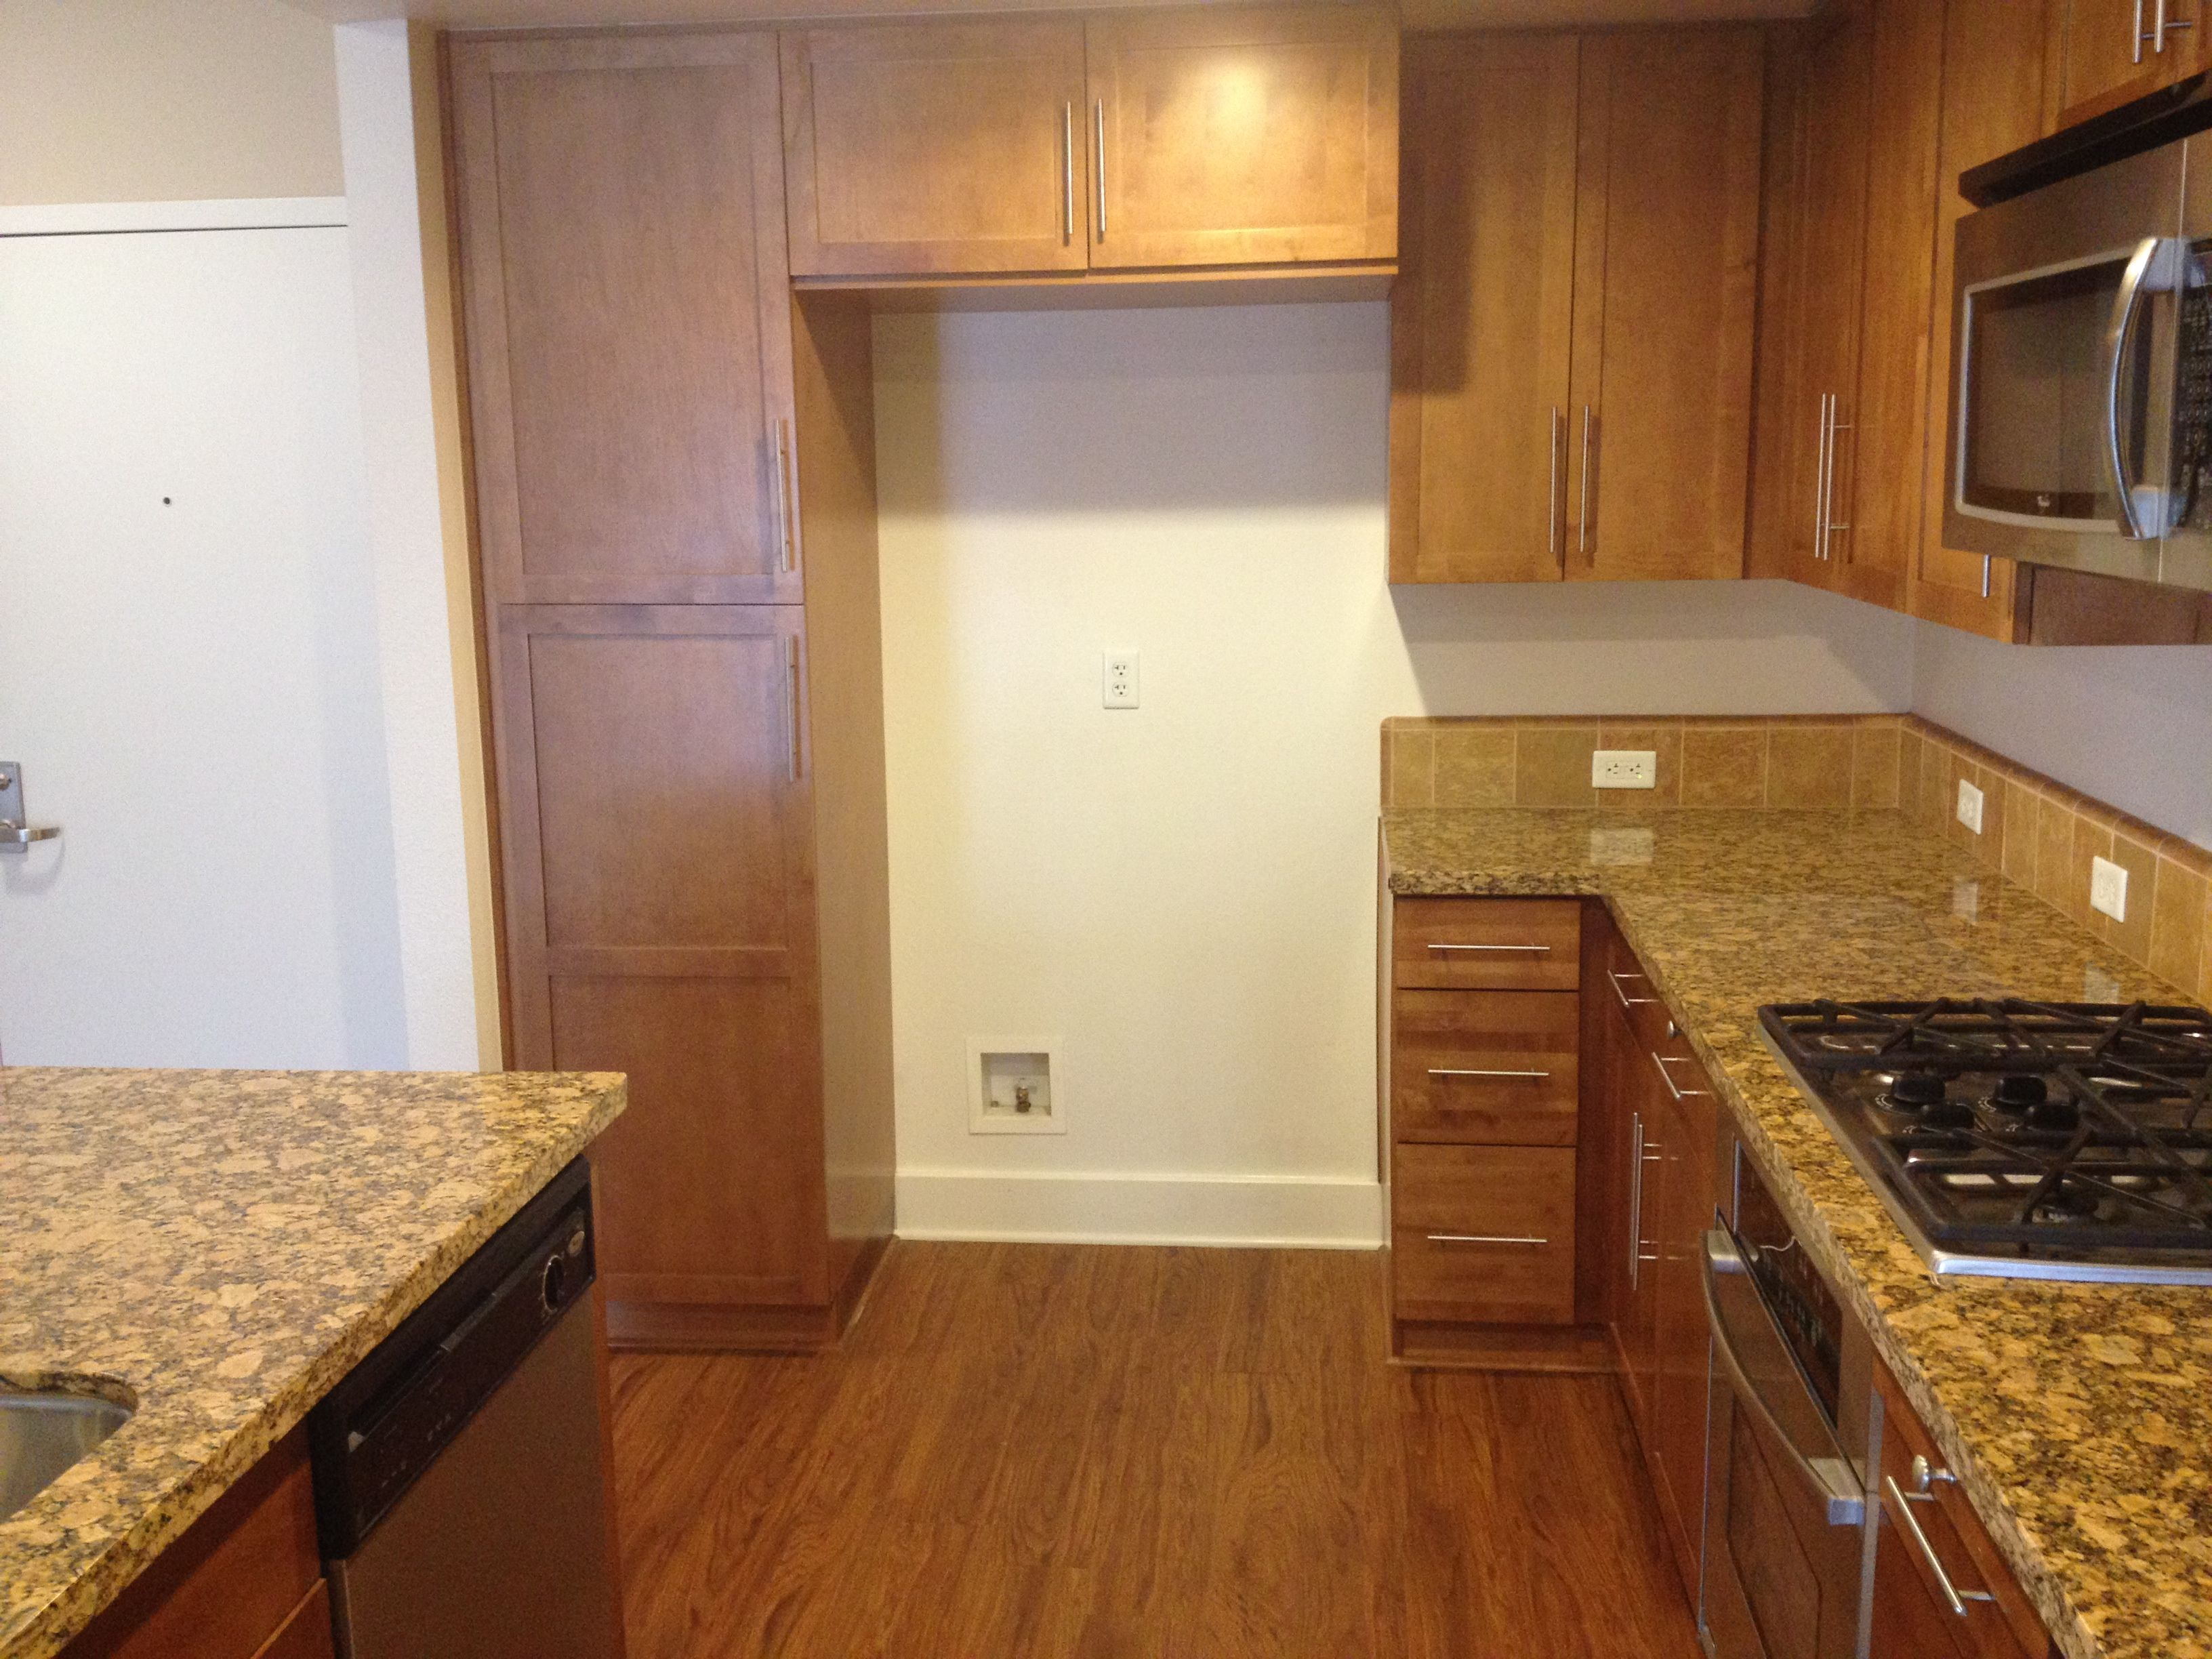 Location: Nick\'s Apartment (There will be a fridge by the ...